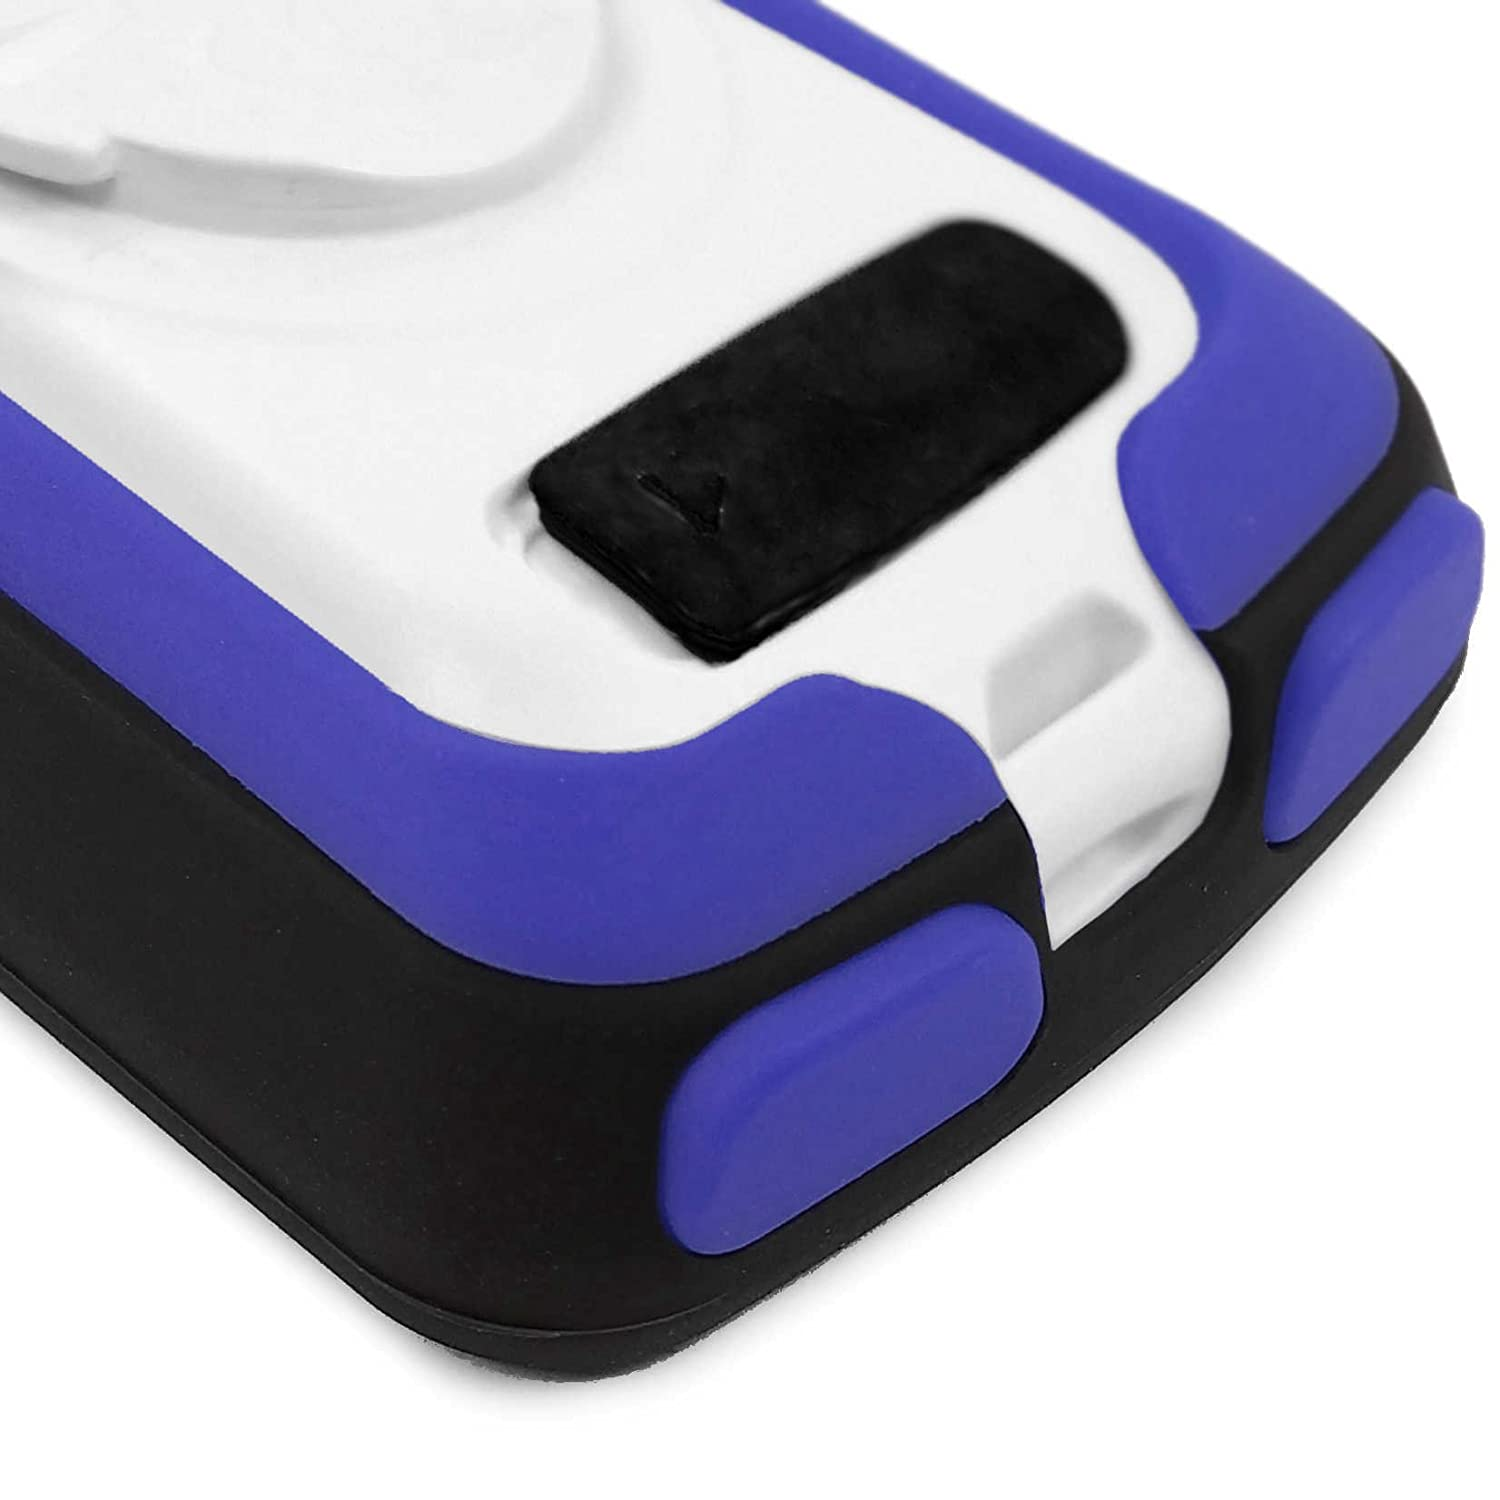 Tuff-Luv 3 in 1 Combo Silicone Gel Skin Case and Screen Cover for Garmin Edge 820 with Out-Front Handlebar Mount Black